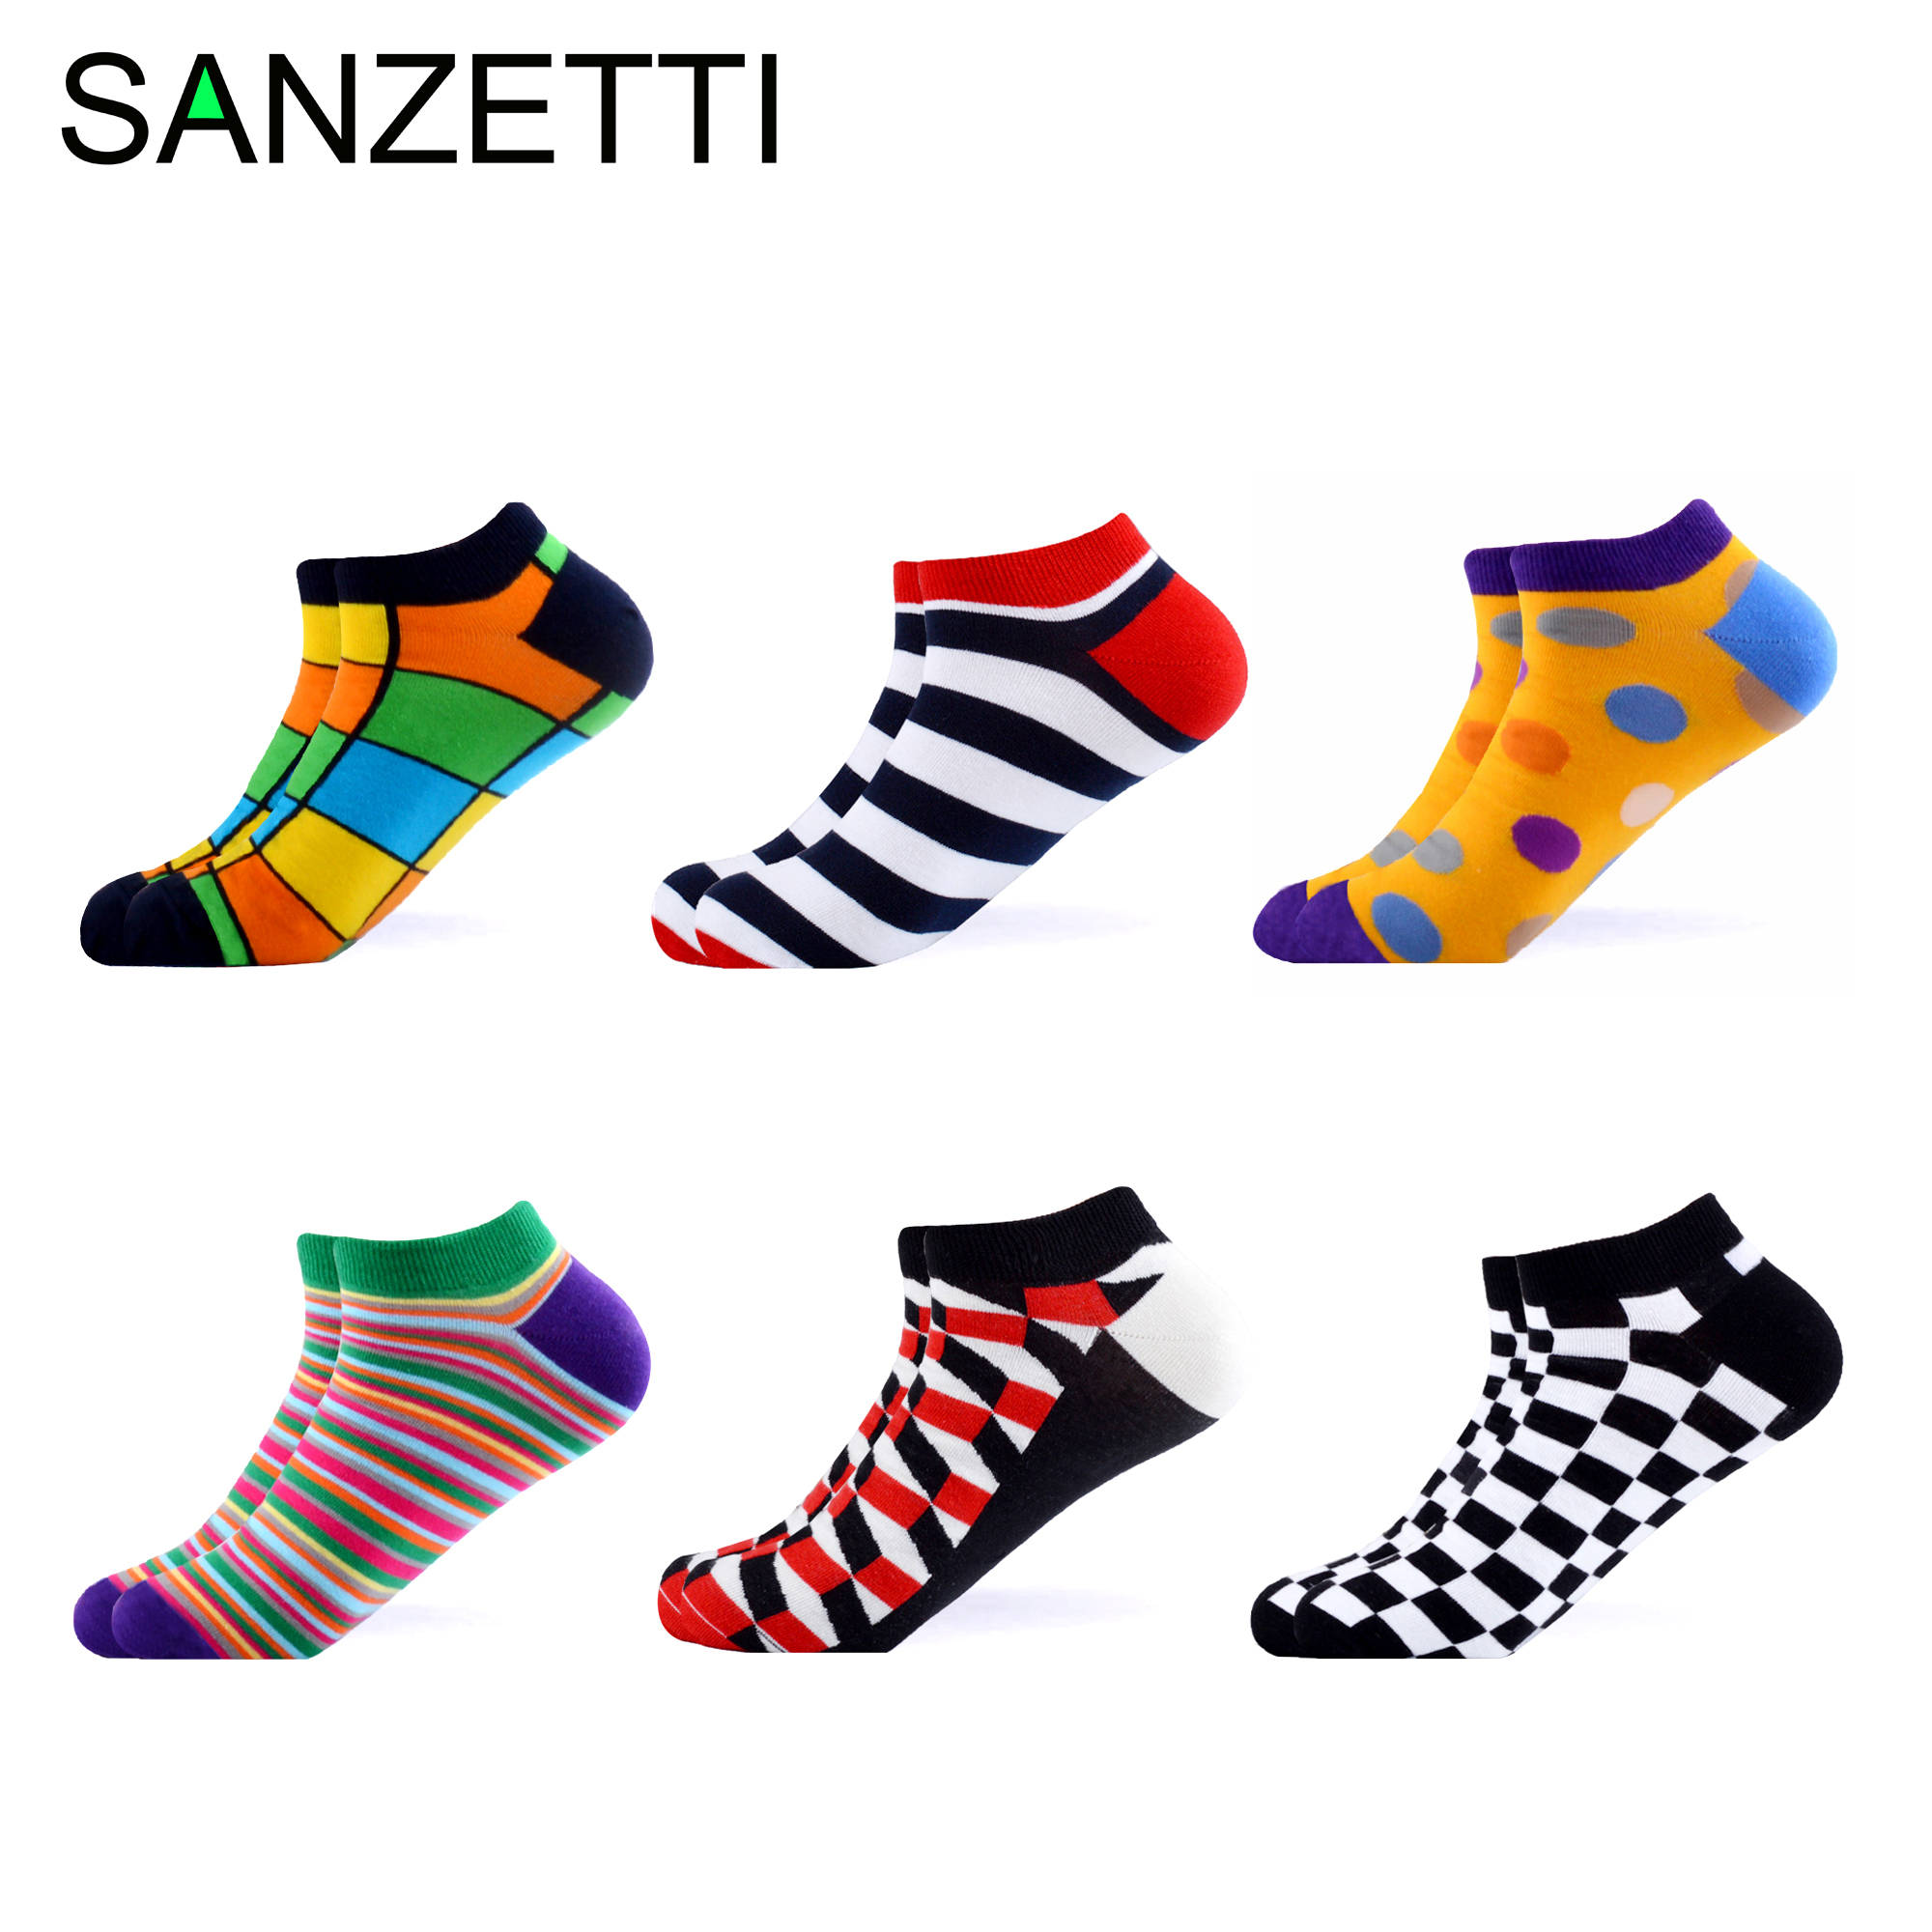 SANZETTI 6 Pairs/Lot Men Summer Novelty Ankle   Socks   Casual Combed Cotton   Socks   Colorful Plaid Animal Pattern Happy Boat   Socks